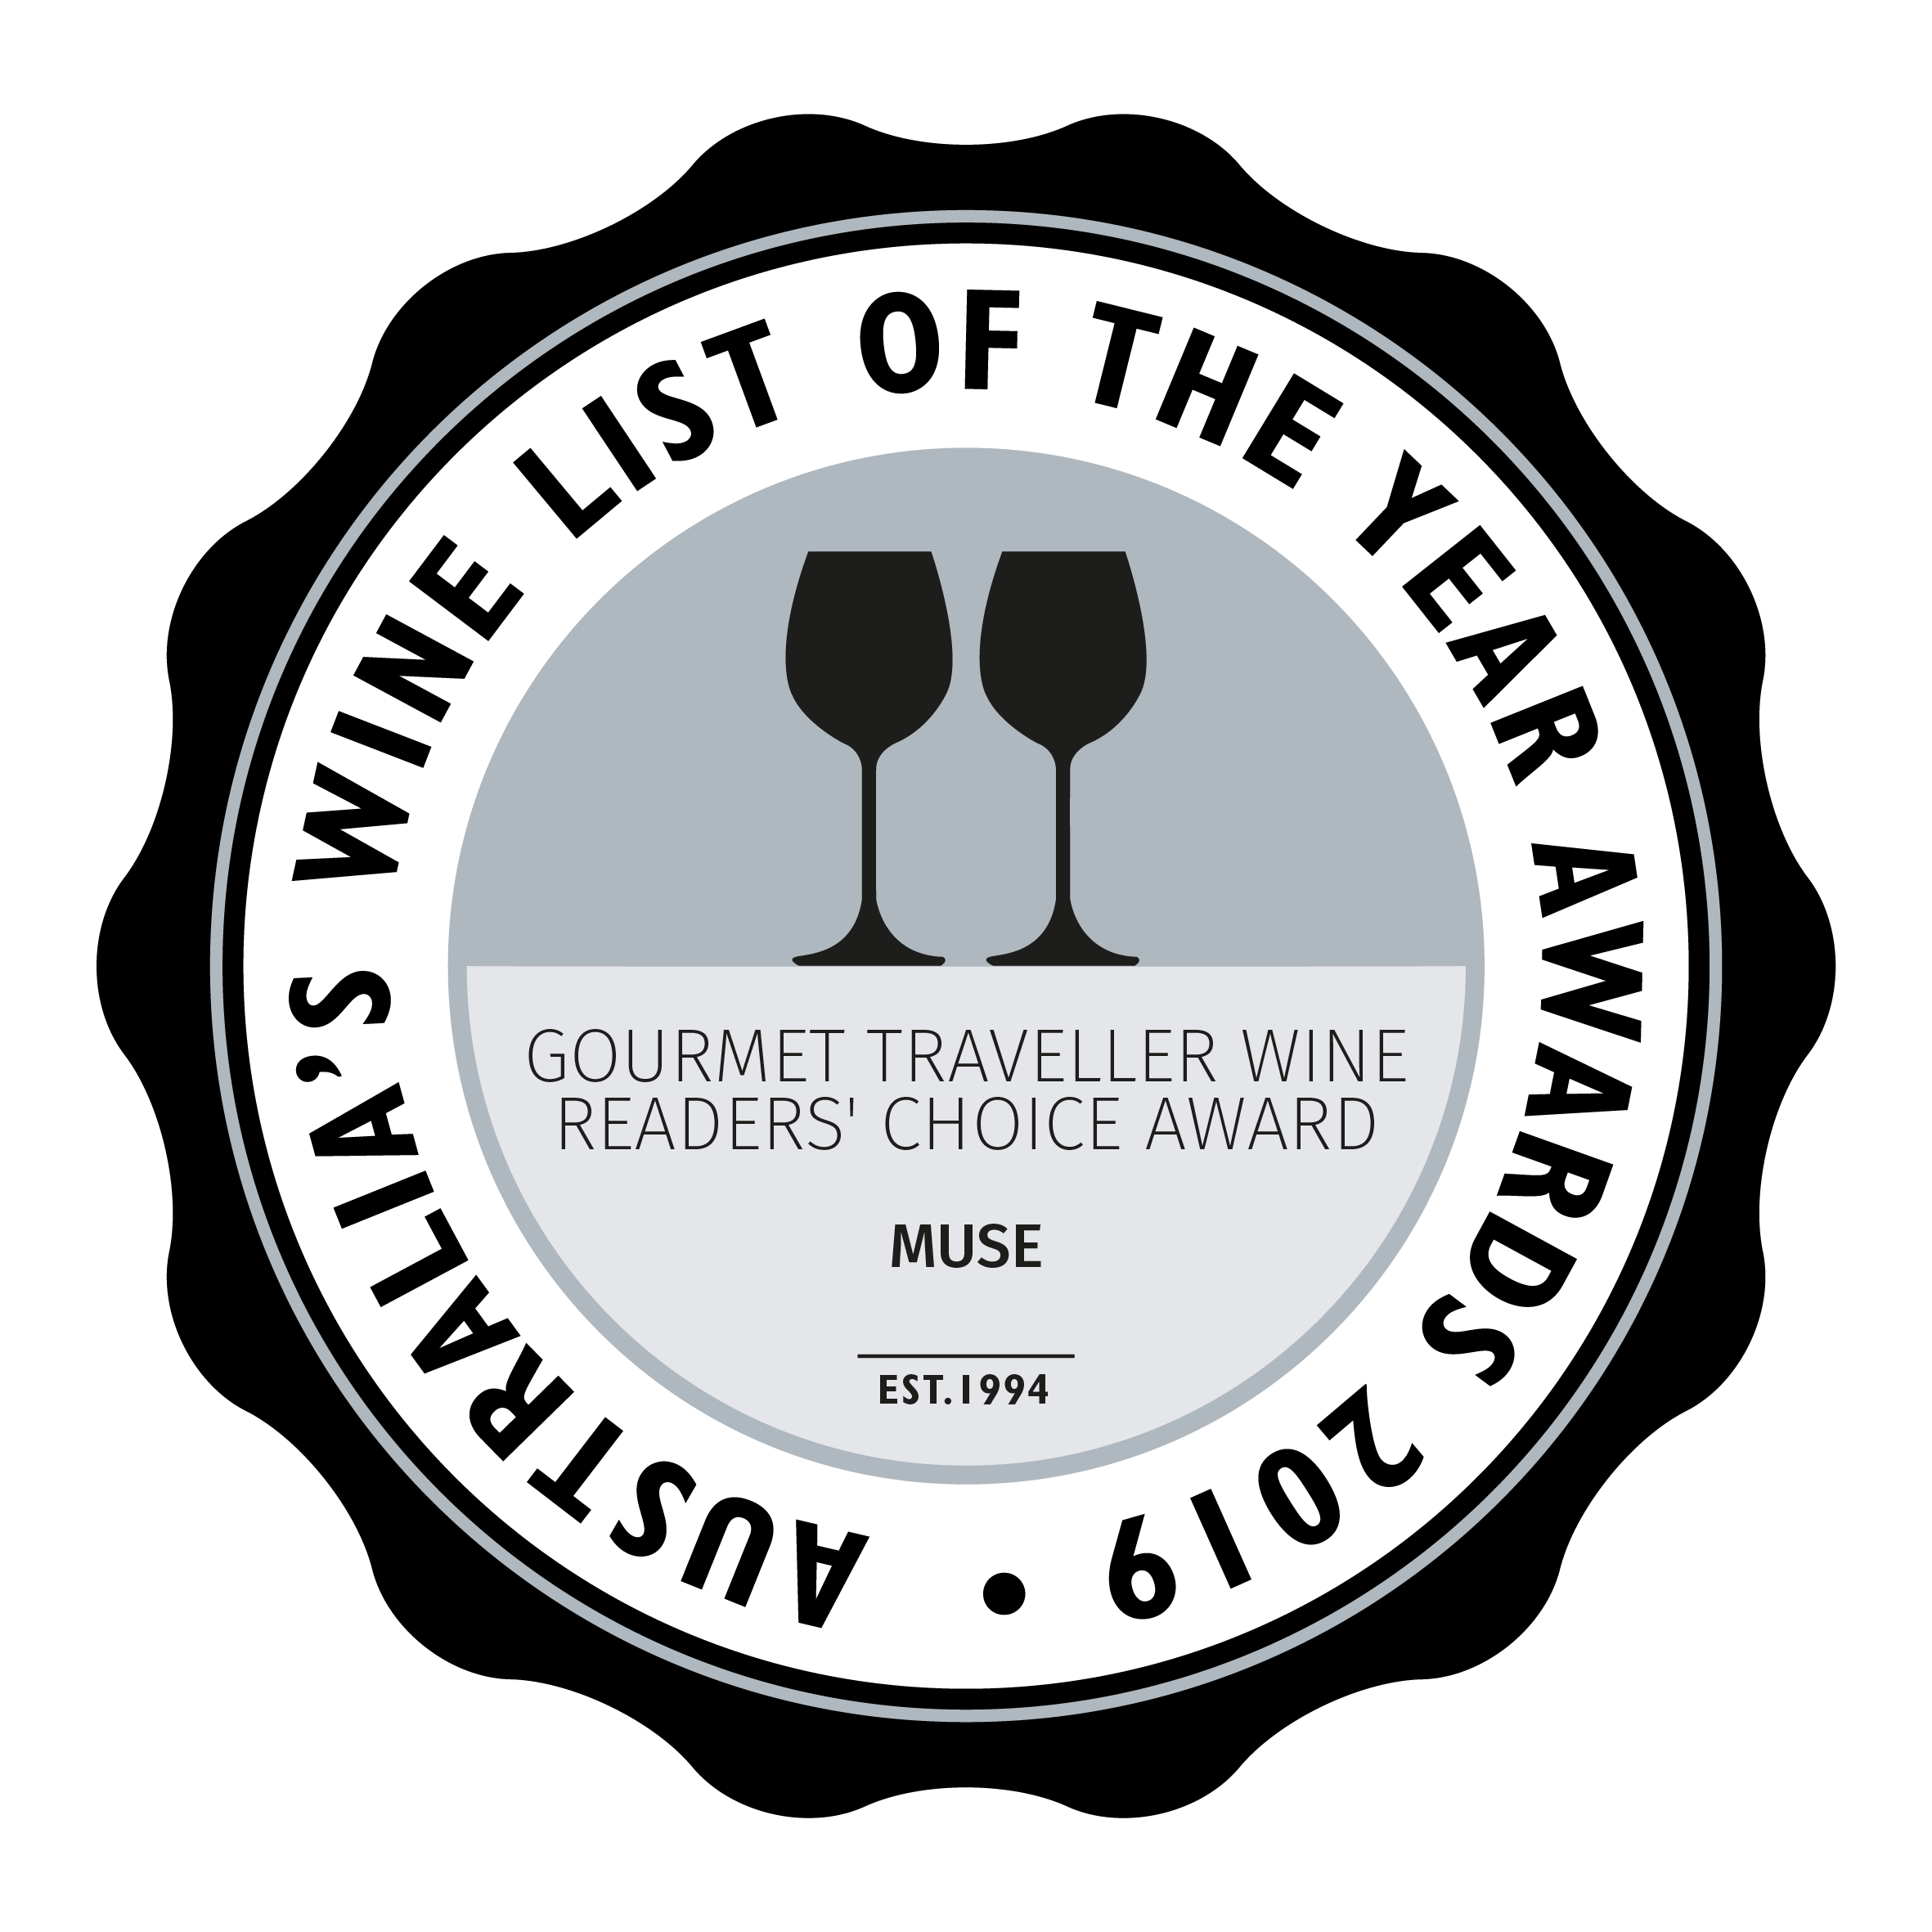 Two Glasses - 2019, 2018, 2017 Australia's Wine List of the Year Awards  WINNER - Gourmet Traveller WINE Readers' Choice Award Australia's Wine List of the Year Awards 2019  FINALIST - Best Listing of Australian Wine 2019. 2018 Australia's Wine List of the Year Awards  FINALIST - ACT Wine List of the Year 2018, 2017 Australia's Wine List of the Year Awards